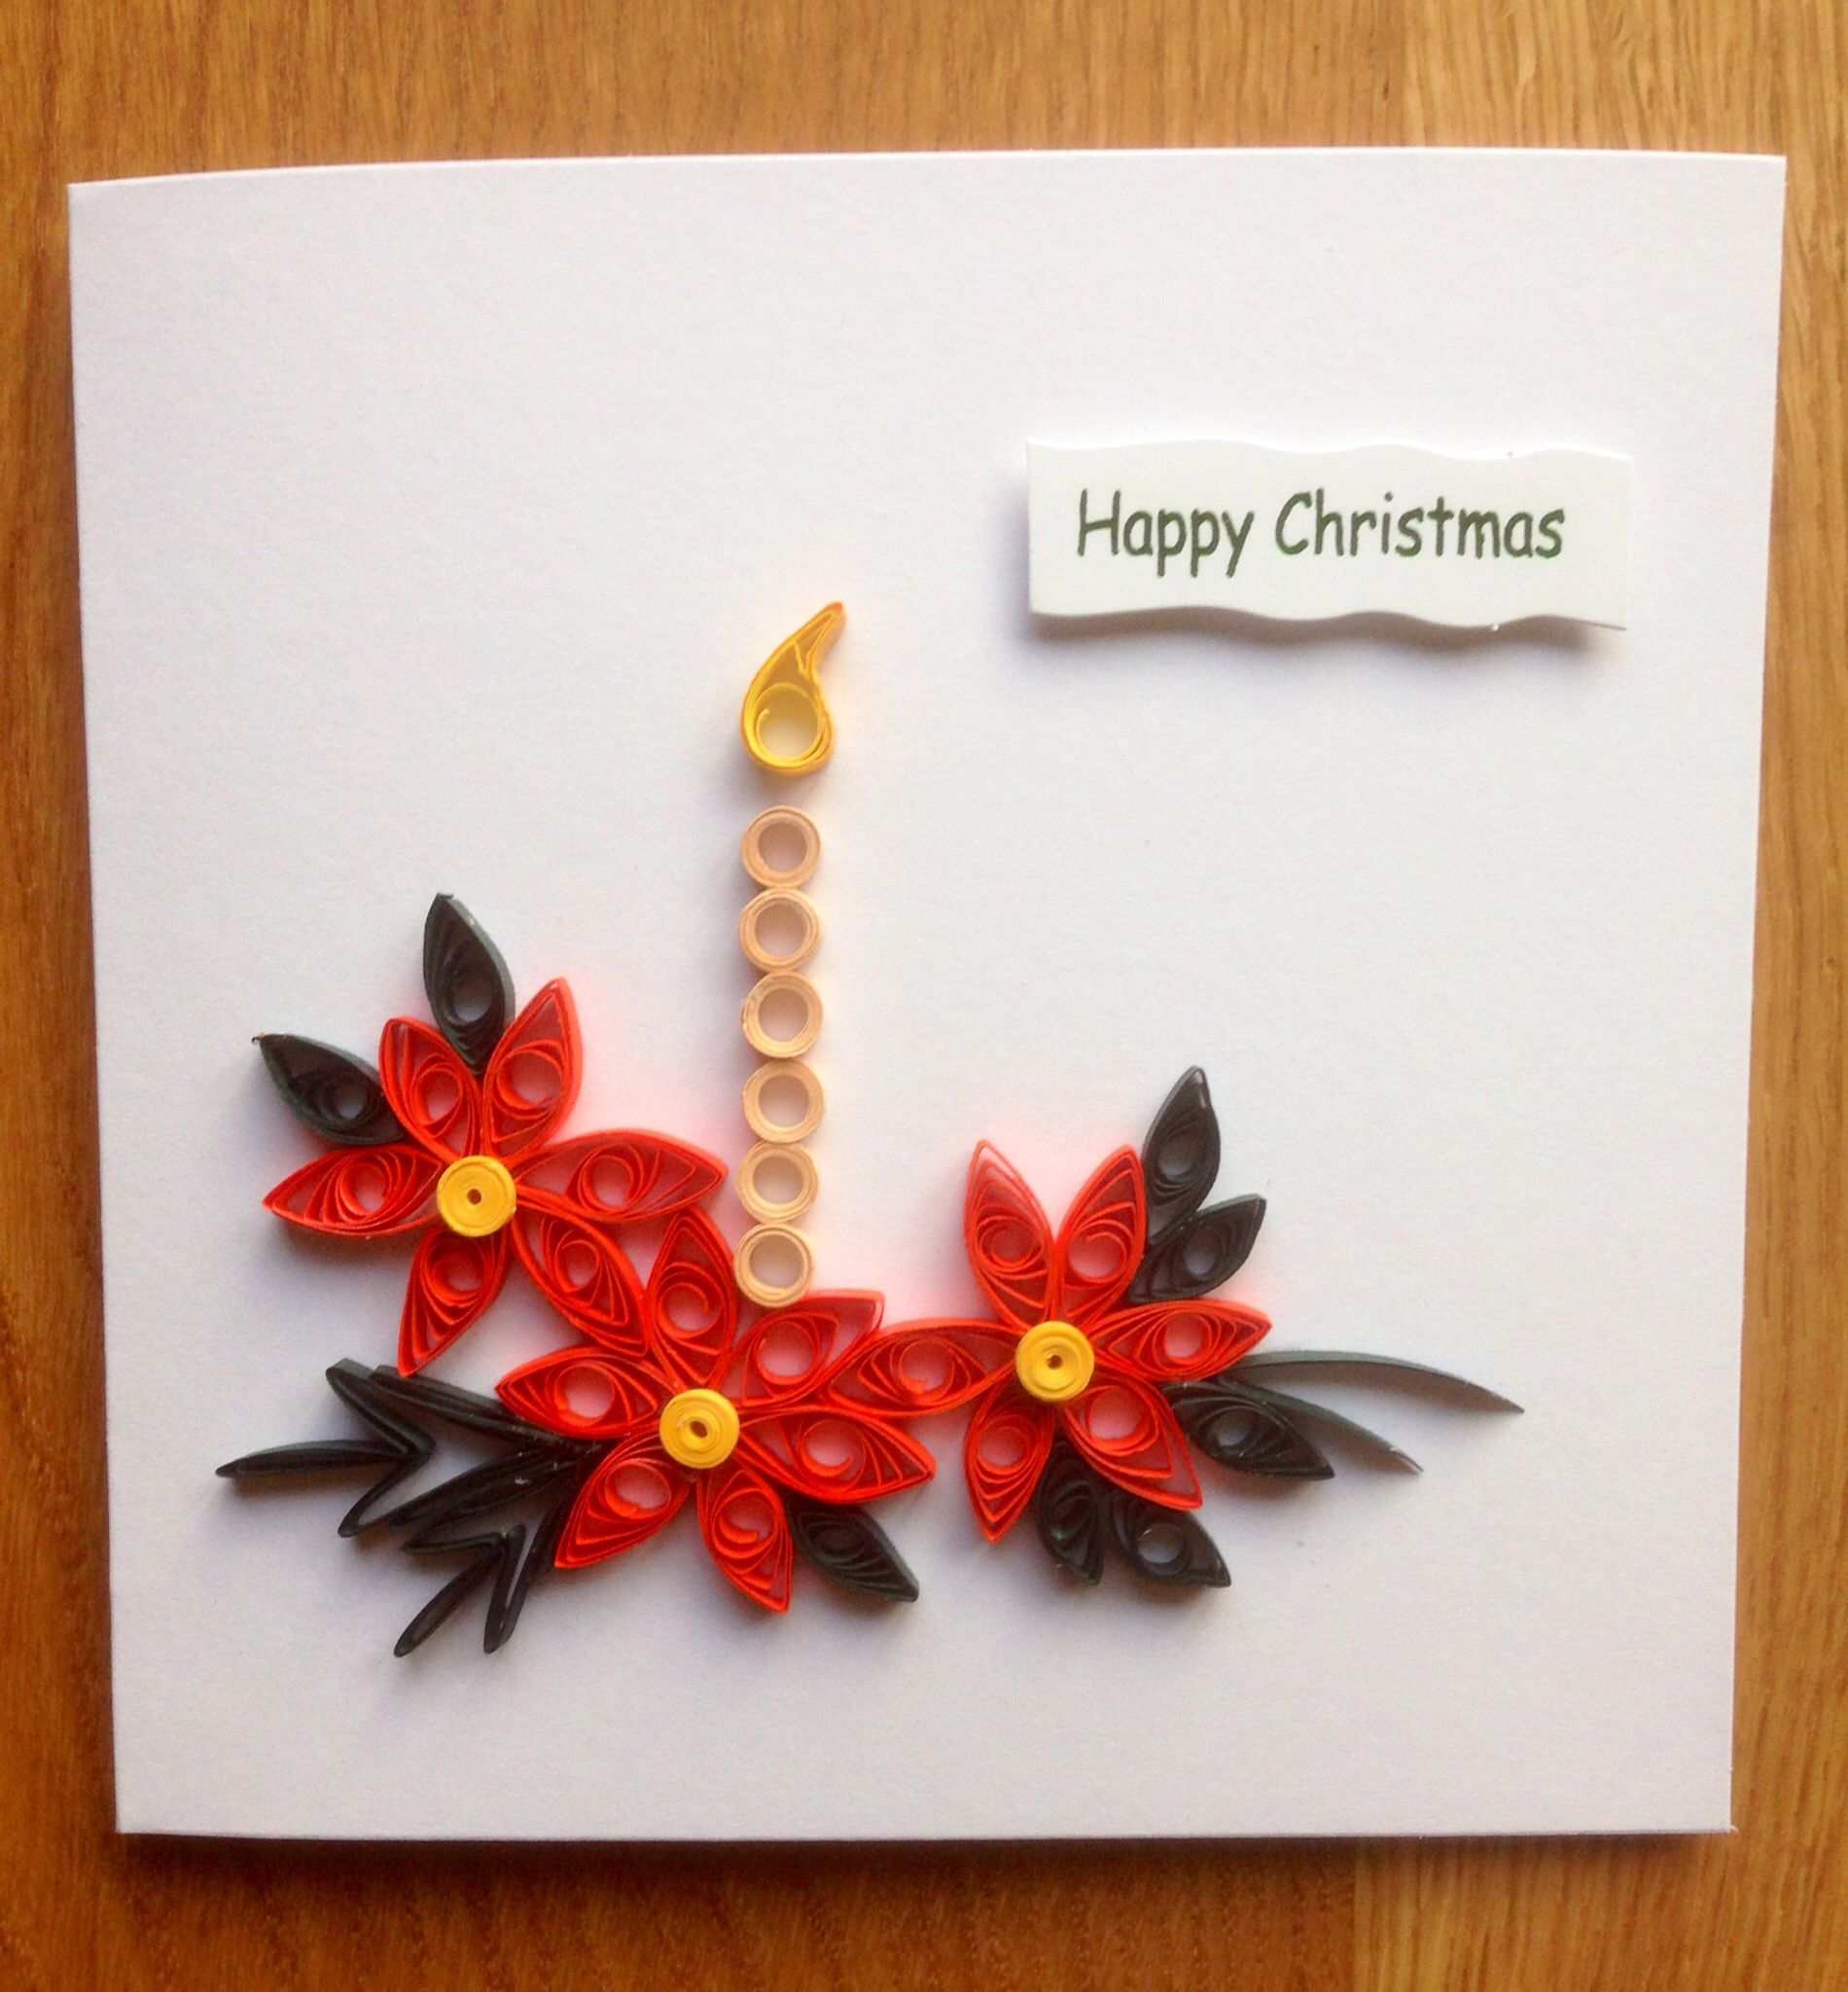 quilling christmas card 2013 christmas pinterest. Black Bedroom Furniture Sets. Home Design Ideas